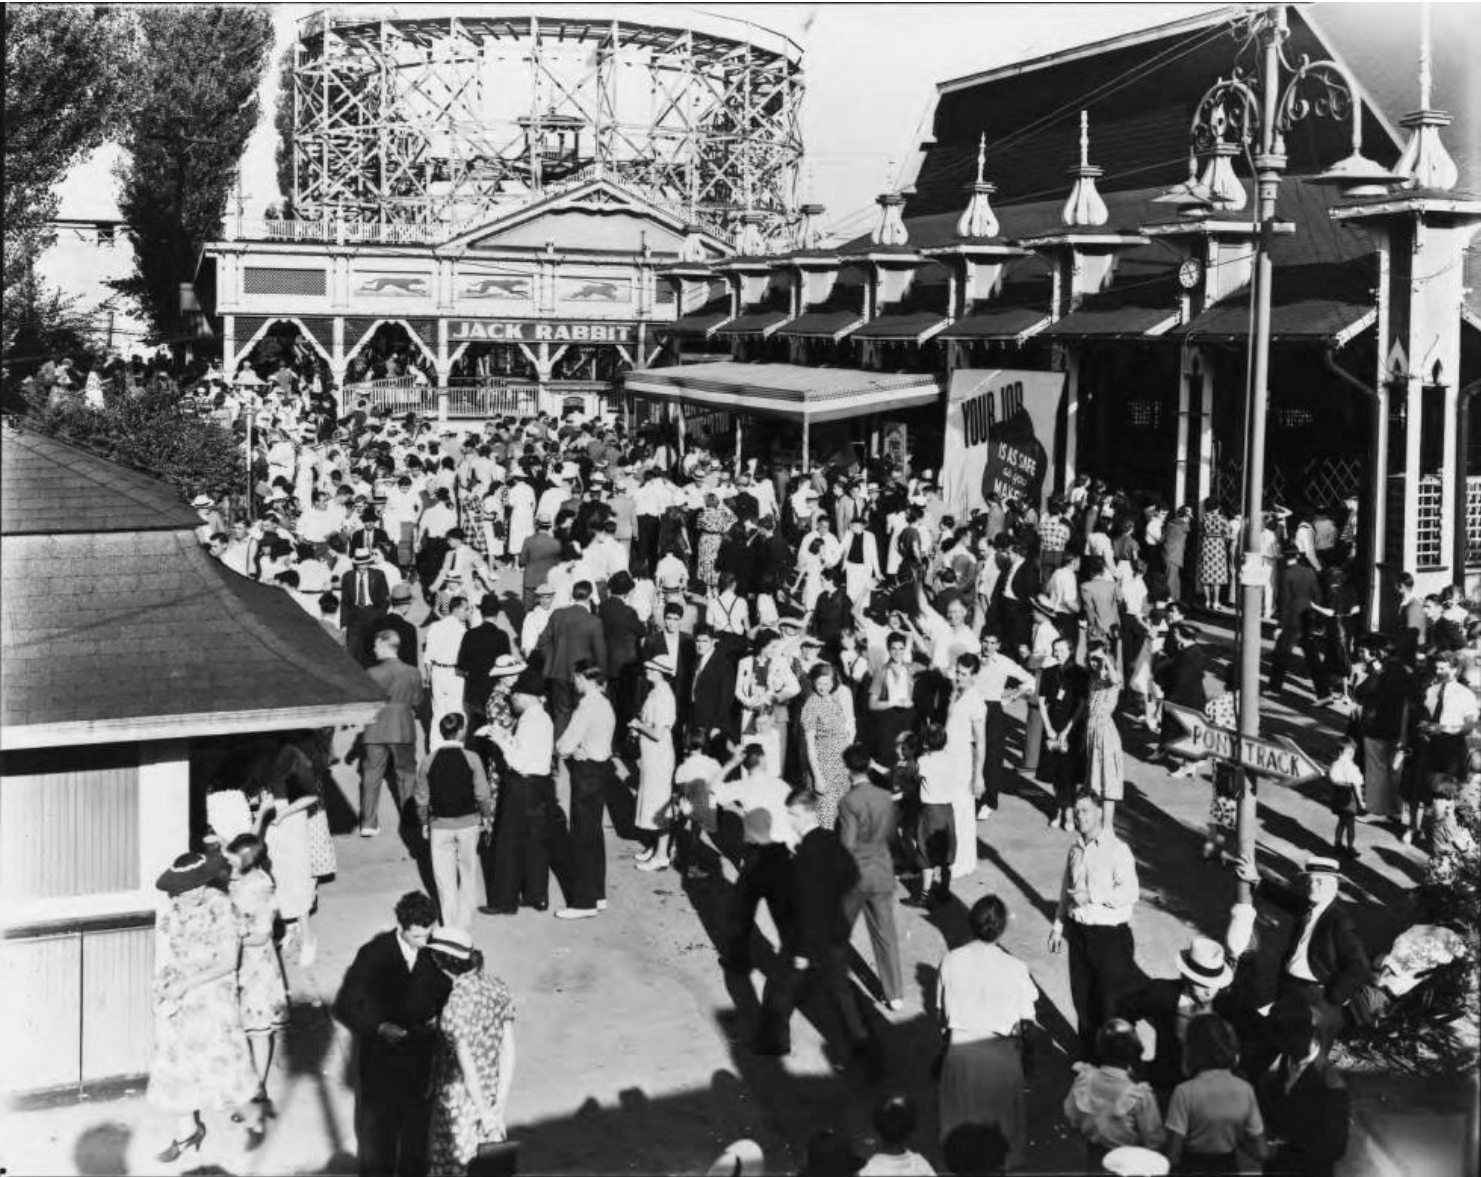 Youngstown Sheet and Tube Company employees at a picnic at Idora Park on Labor Day in 1939. The company sponsored an annual outing. The popular Jack Rabbit roller coaster is visible in the background.